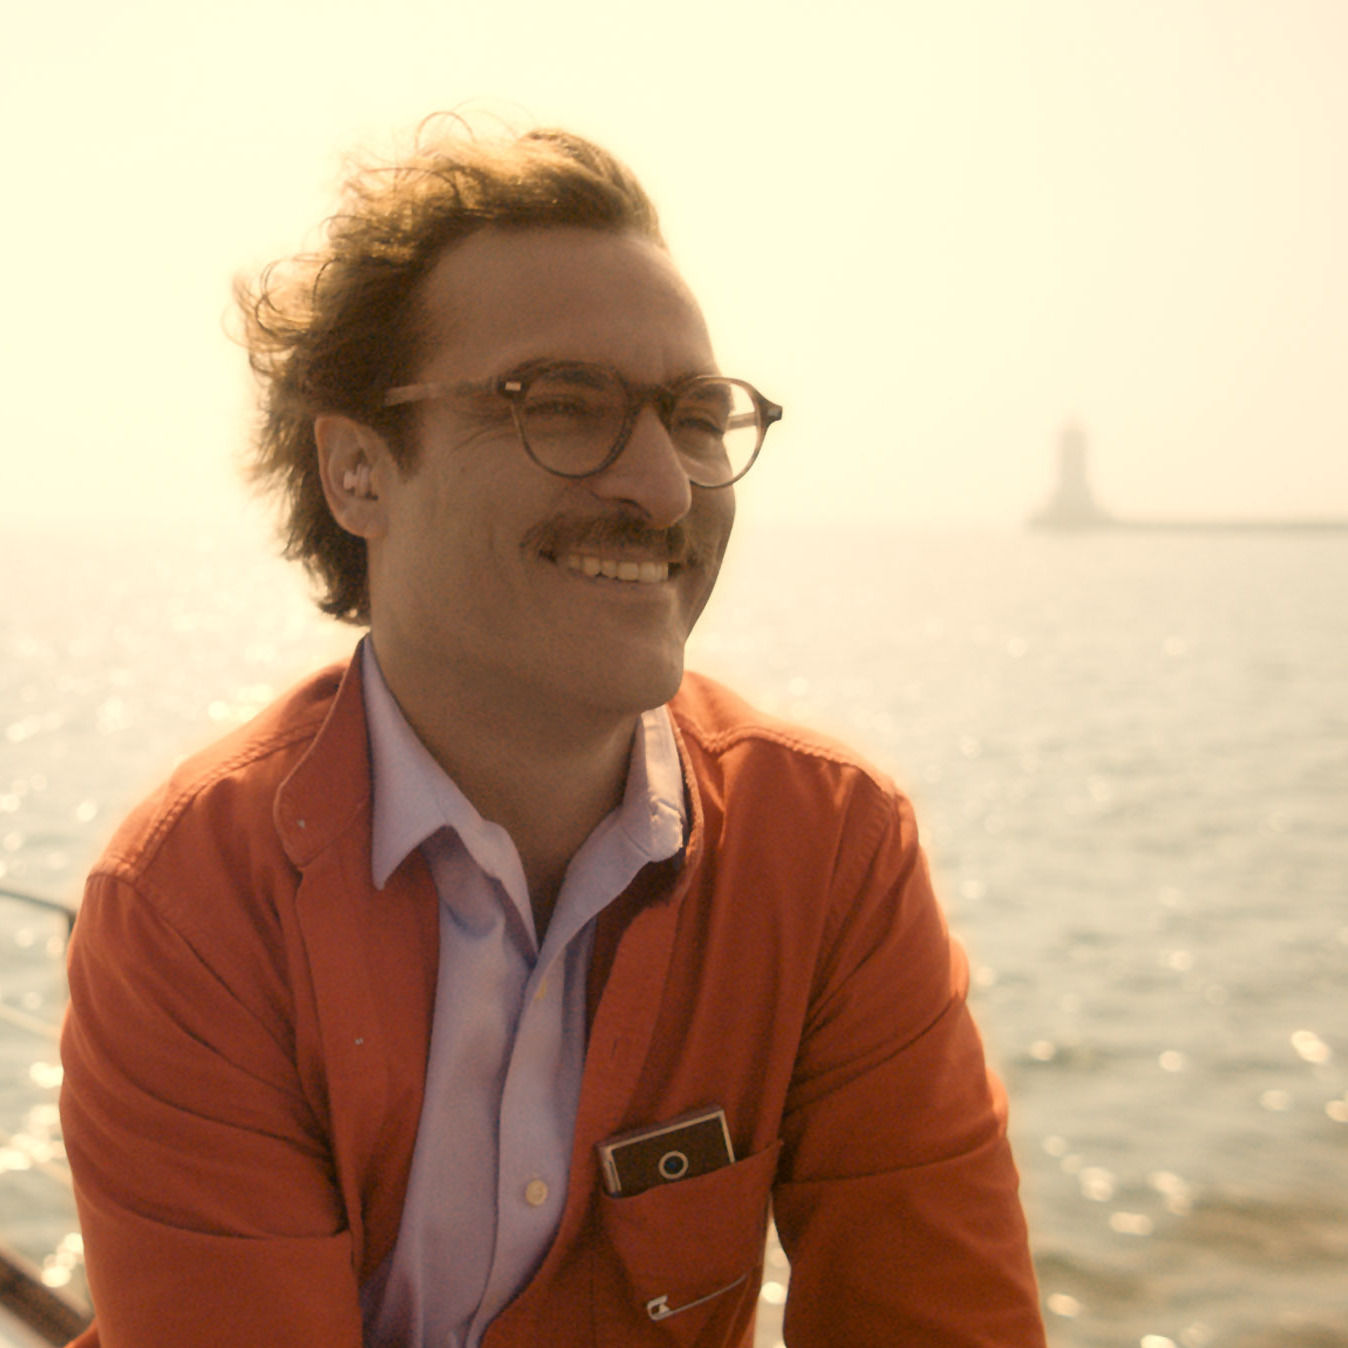 Joaquin Phoenix's Her character, Theodore, has a job writing intimate -- and sometimes erotic -- cards and letters on behalf of other people.